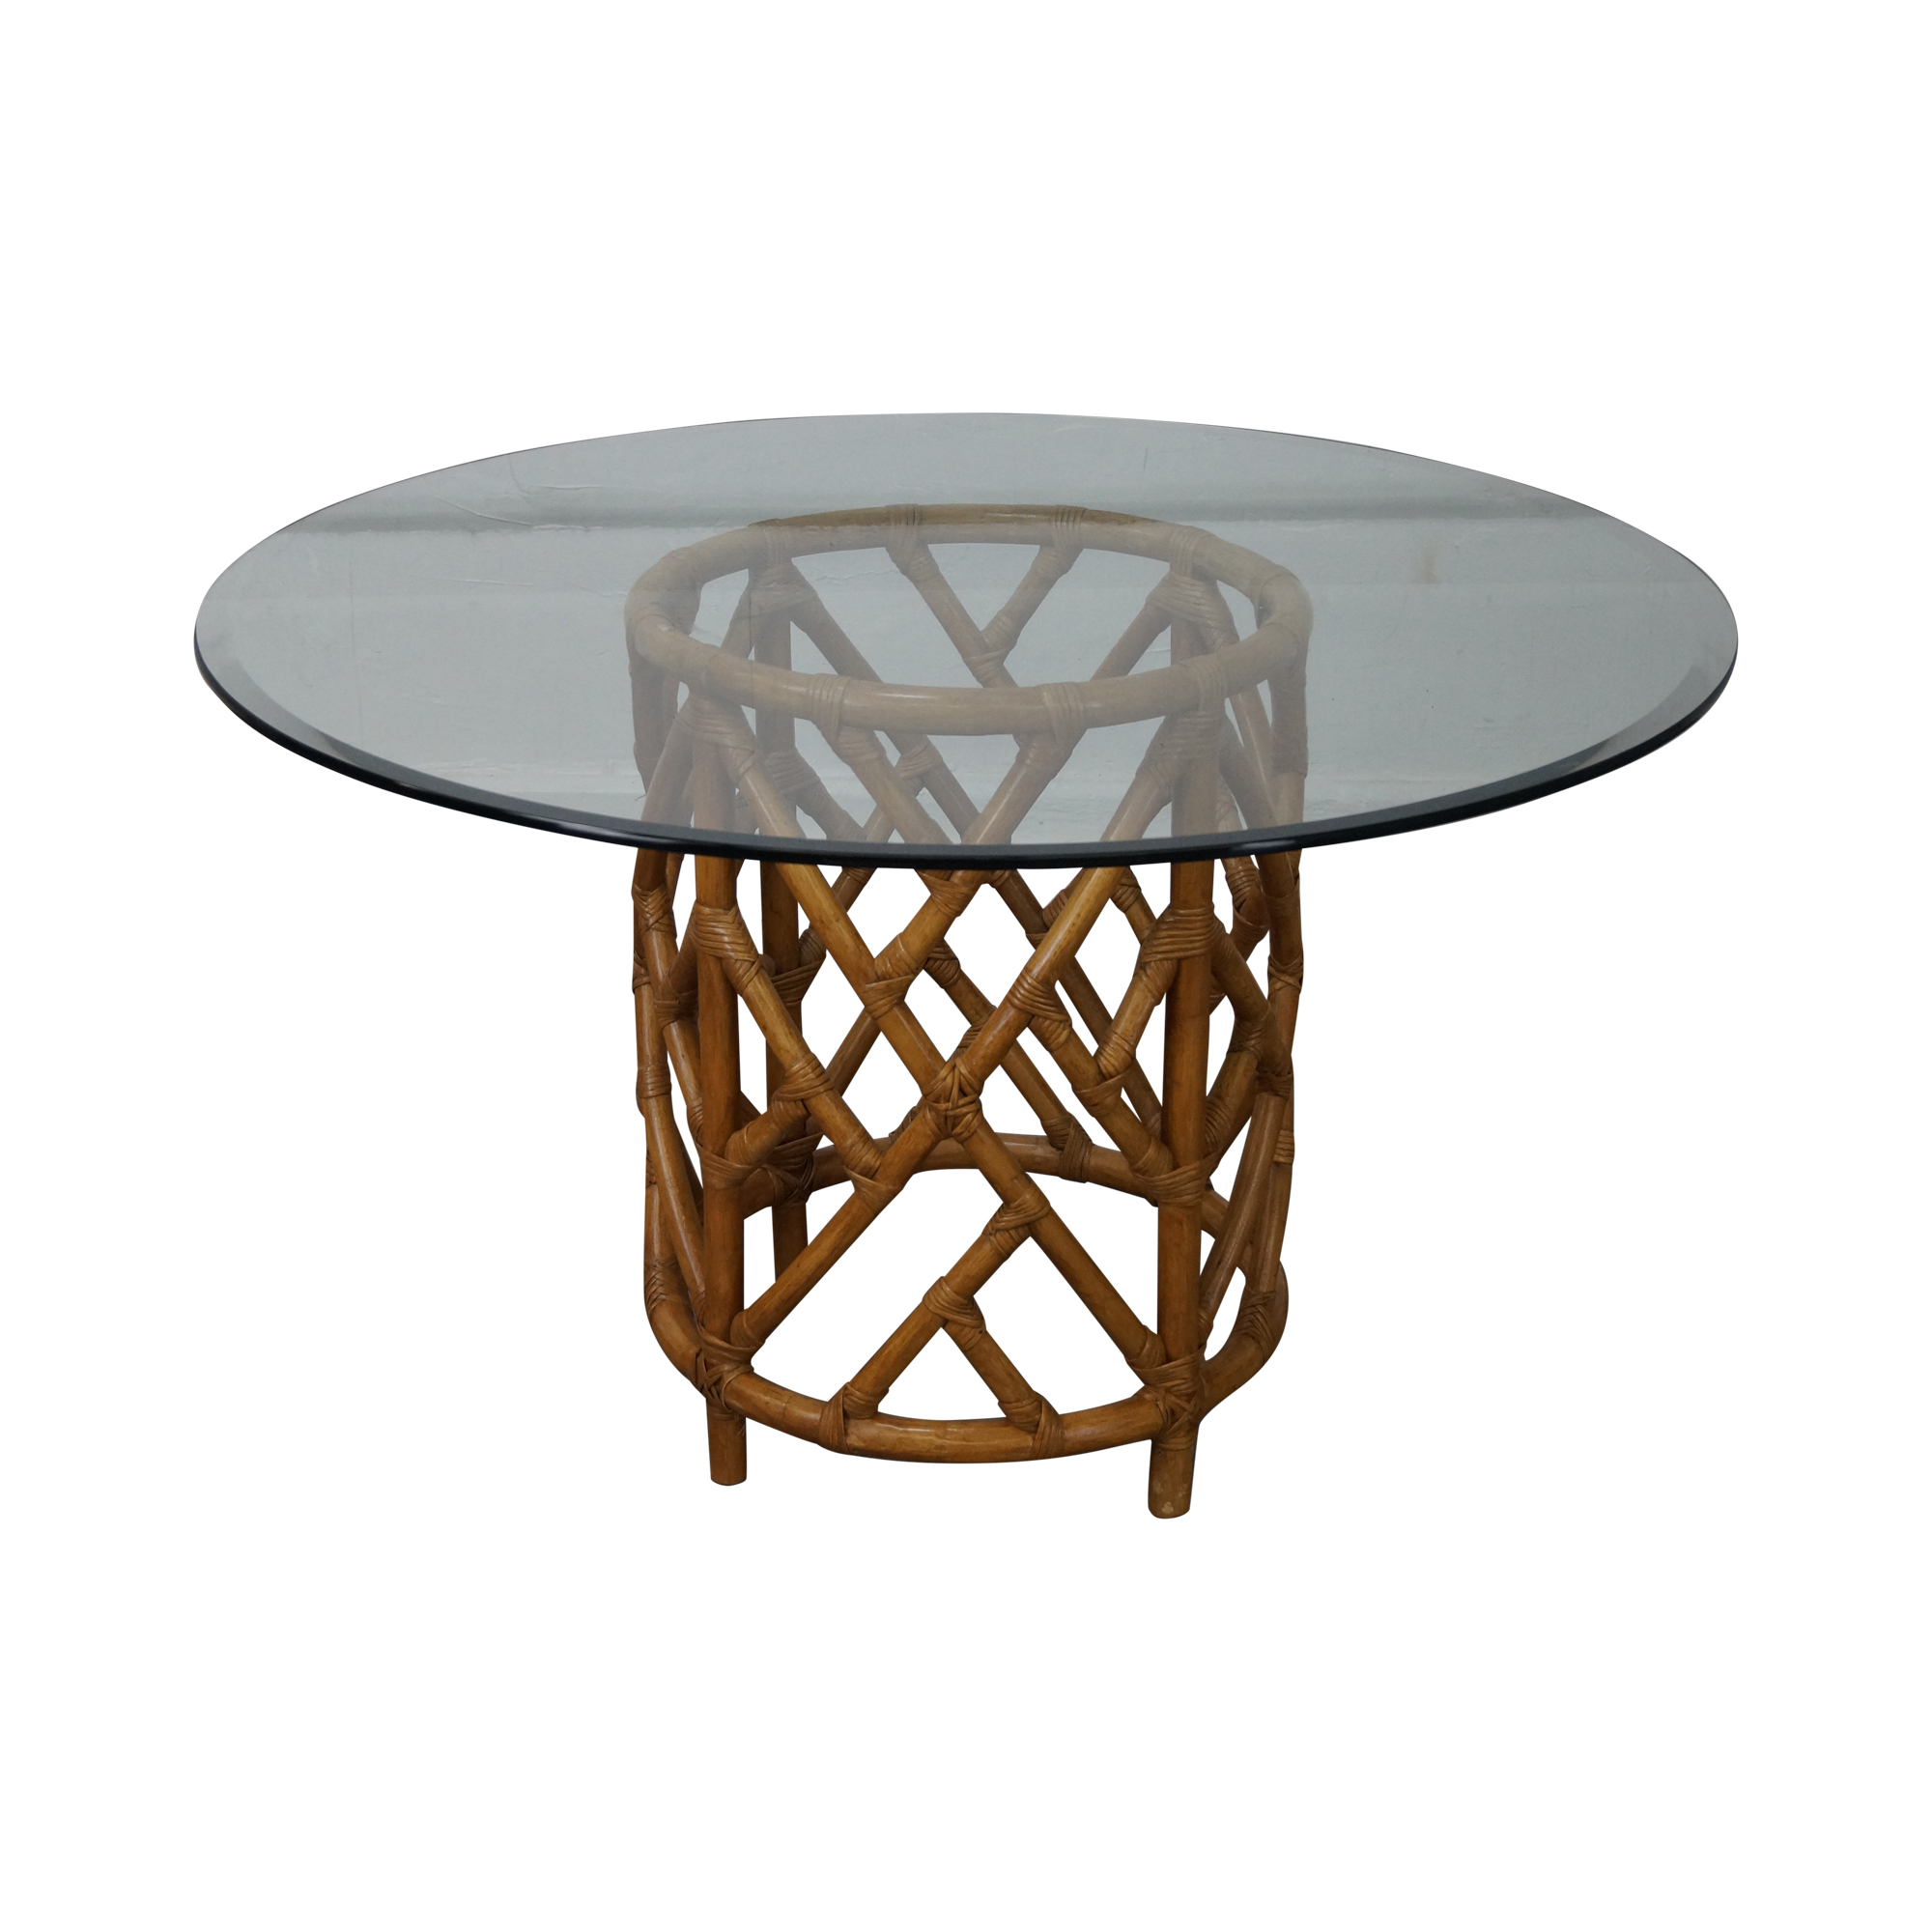 Round Glass Top Rattan Base Dining Table Chairish : d8f50bd6 8ce3 4ab1 80cb bc75433780beaspectfitampwidth640ampheight640 from www.chairish.com size 640 x 640 jpeg 27kB